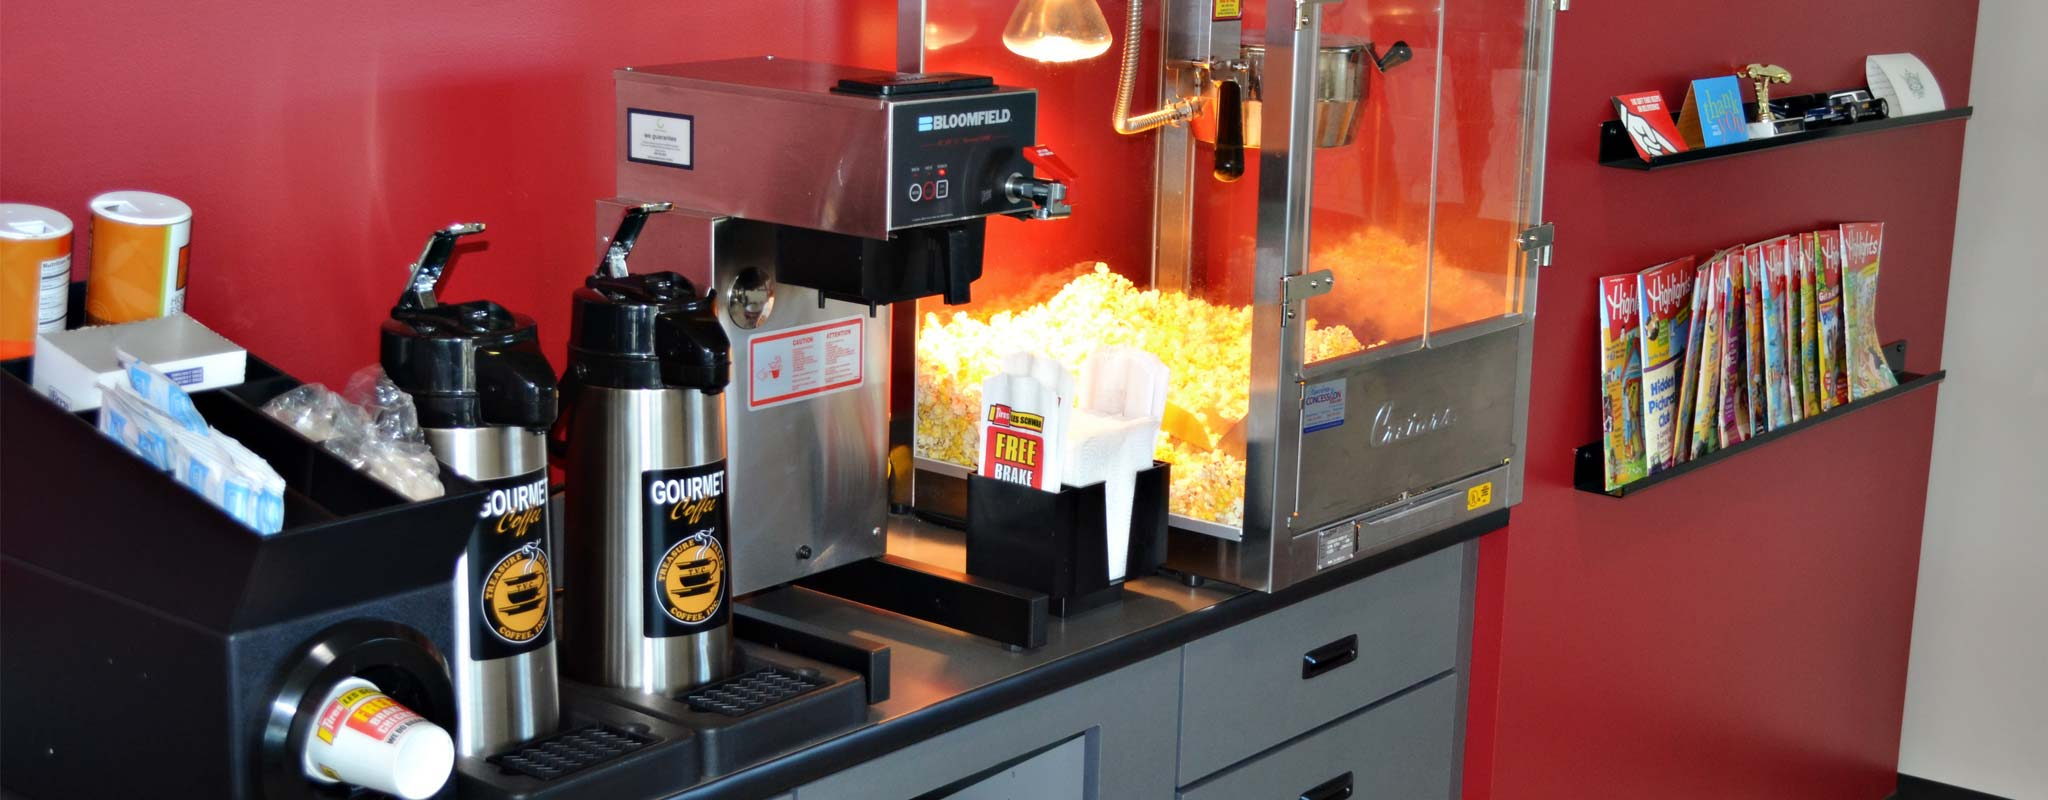 One of many Les Schwab's signature popcorn machines.